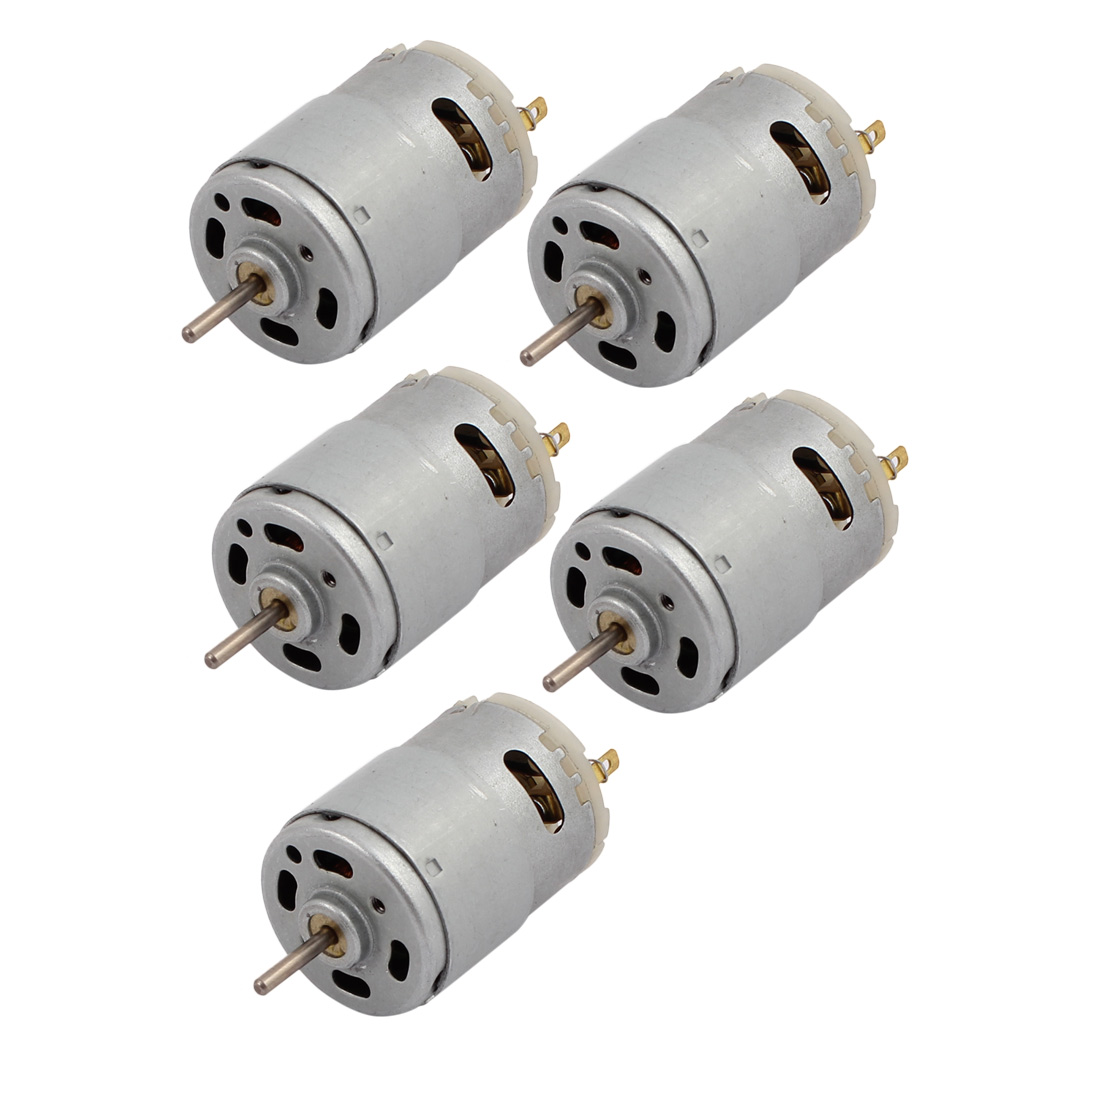 5PCS R385 DC 12V 6500RPM Electric Ring Covered Motor w Carbon Brush